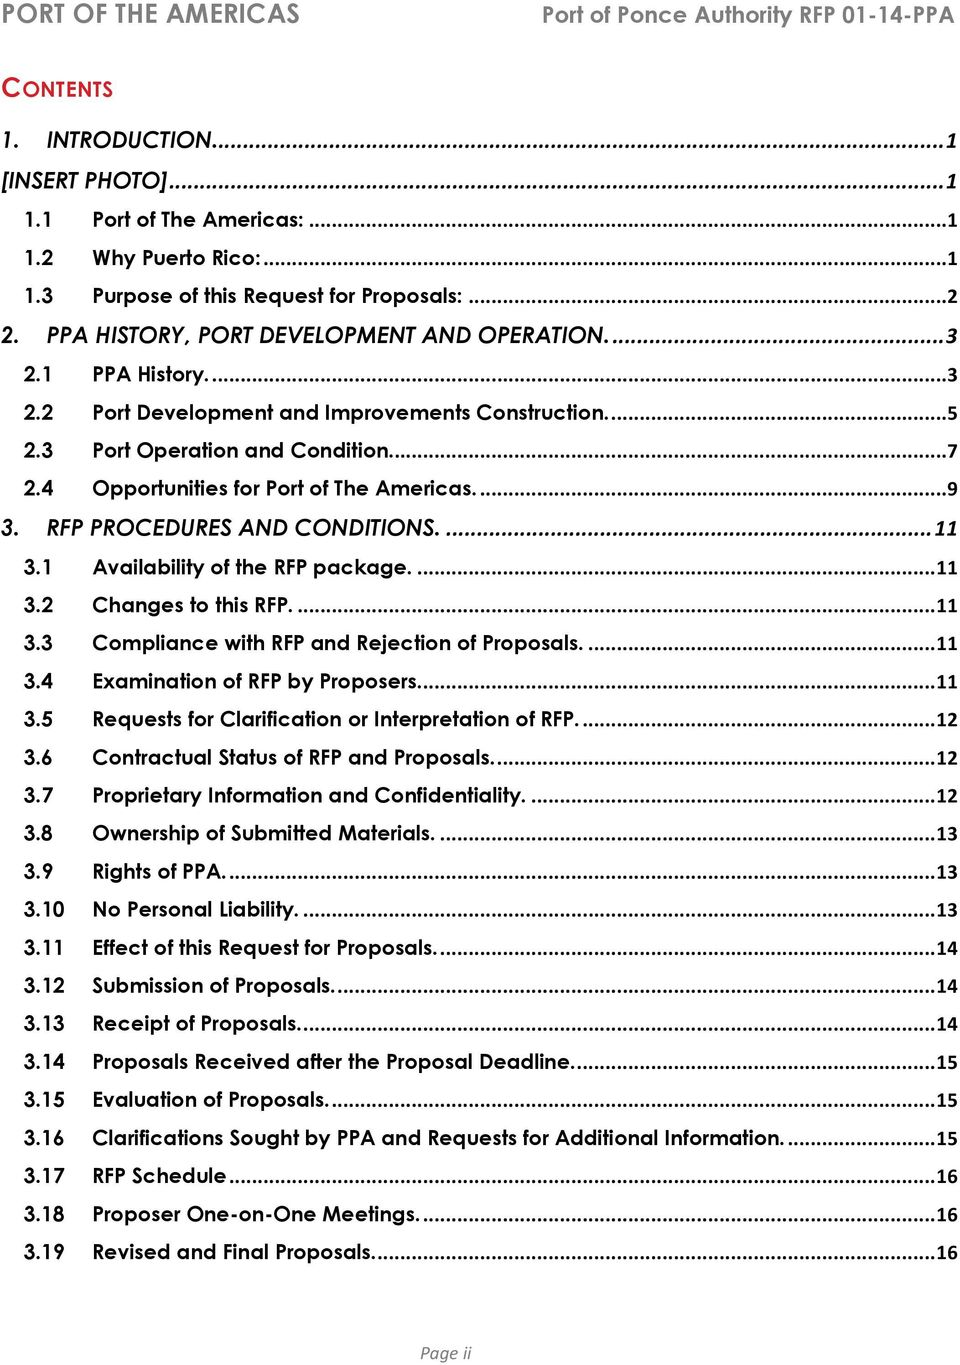 RFP PROCEDURES AND CONDITIONS.... 11 3.1 Availability of the RFP package.... 11 3.2 Changes to this RFP.... 11 3.3 Compliance with RFP and Rejection of Proposals.... 11 3.4 Examination of RFP by Proposers.